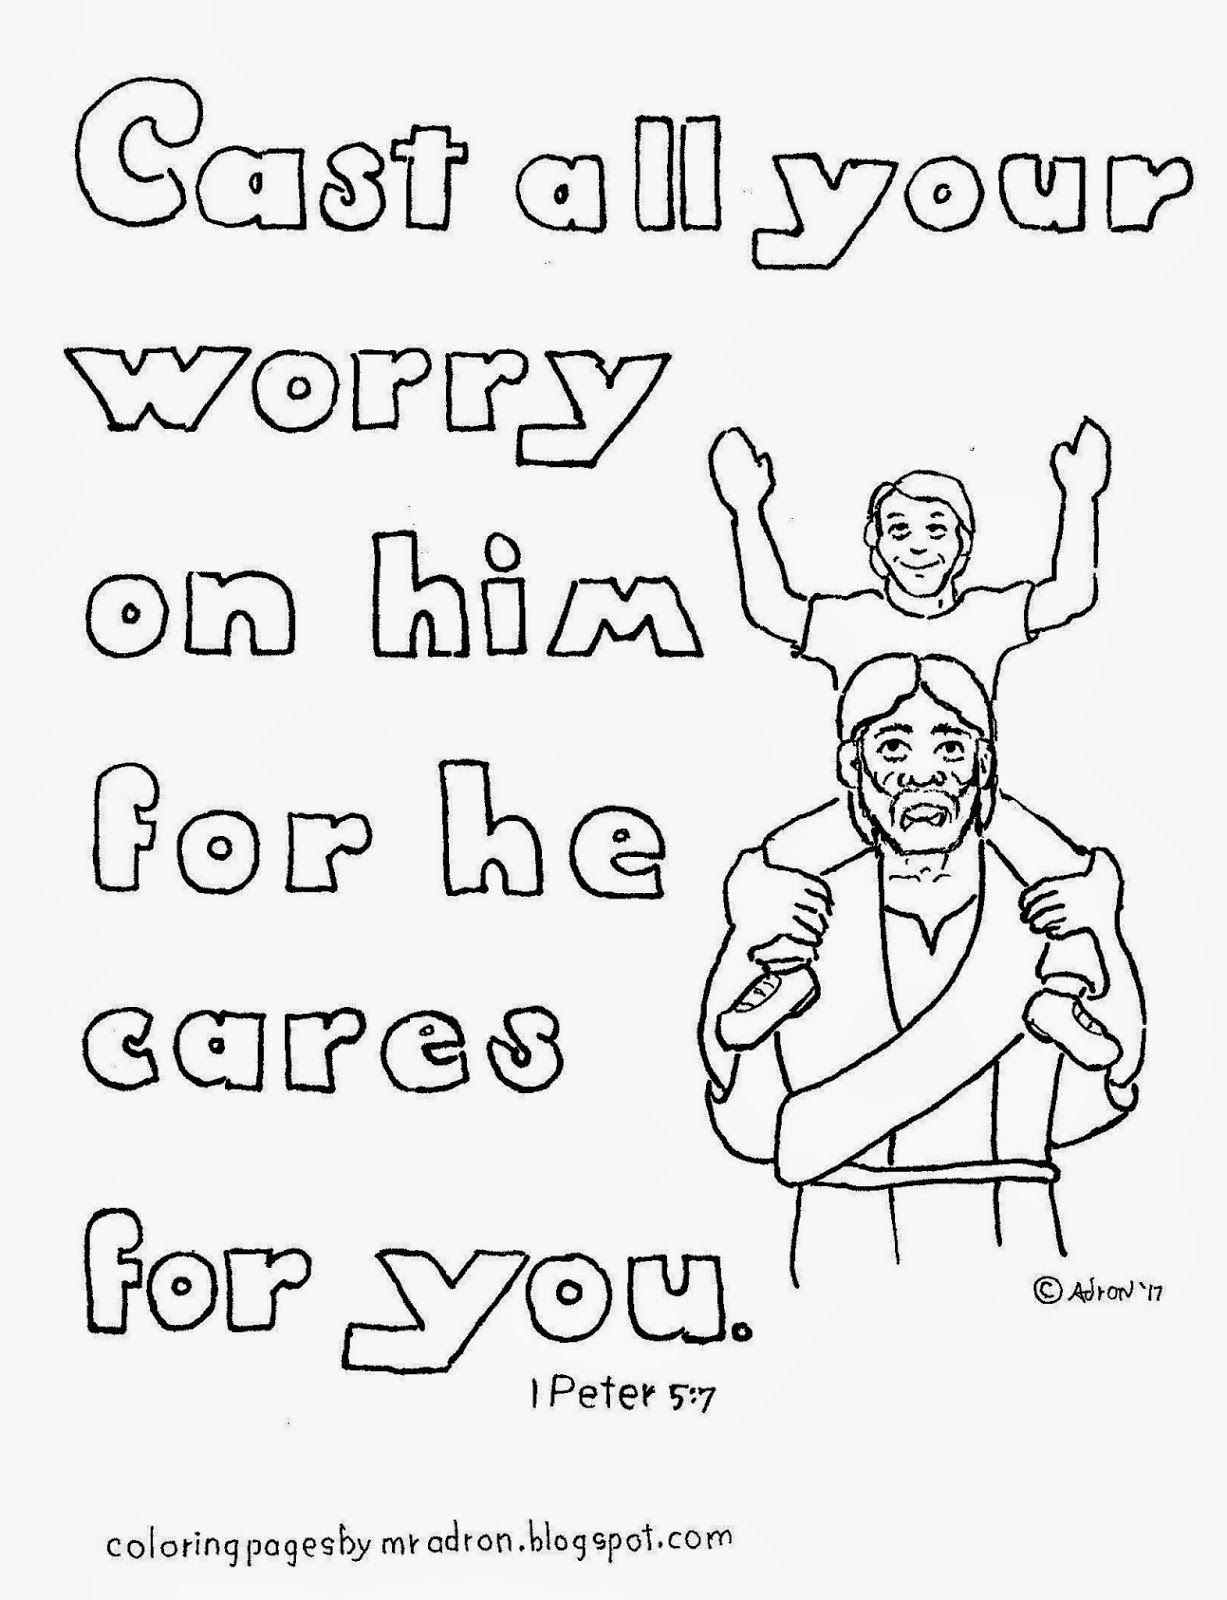 Cast your worry on God coloring page: see more at my blog